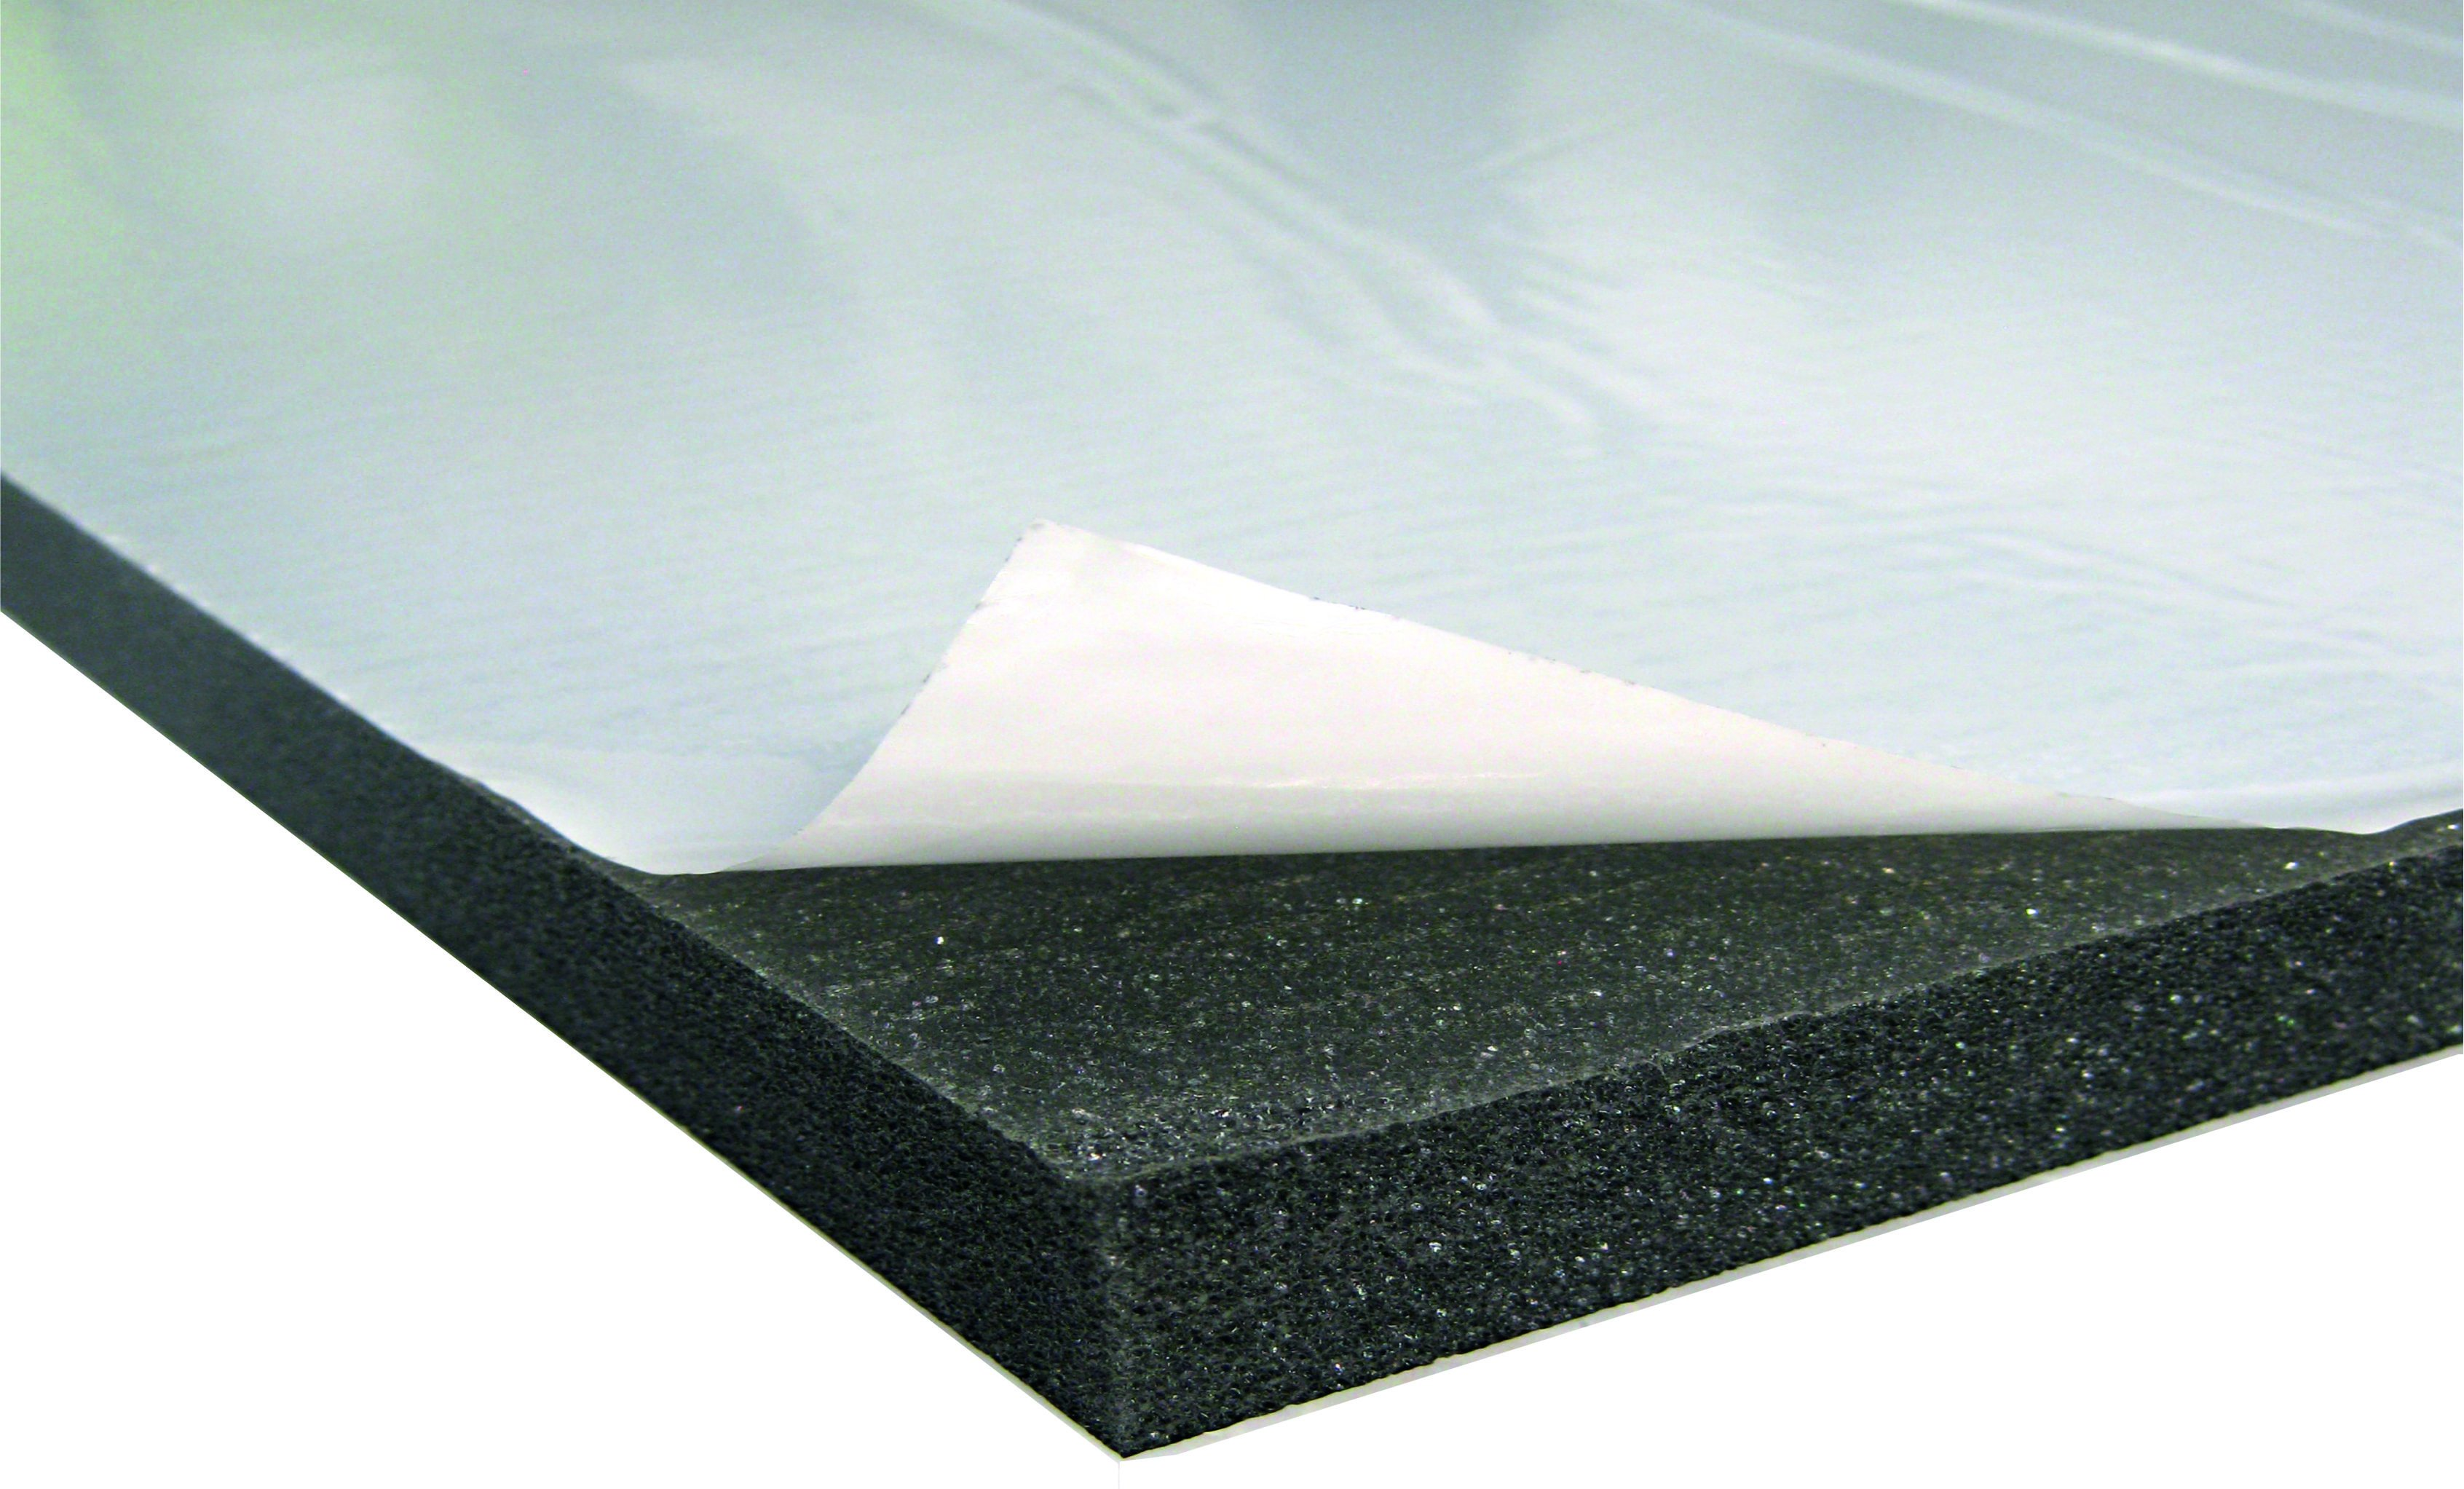 Acoustic foam with protecting skin PUR 20 adhesive